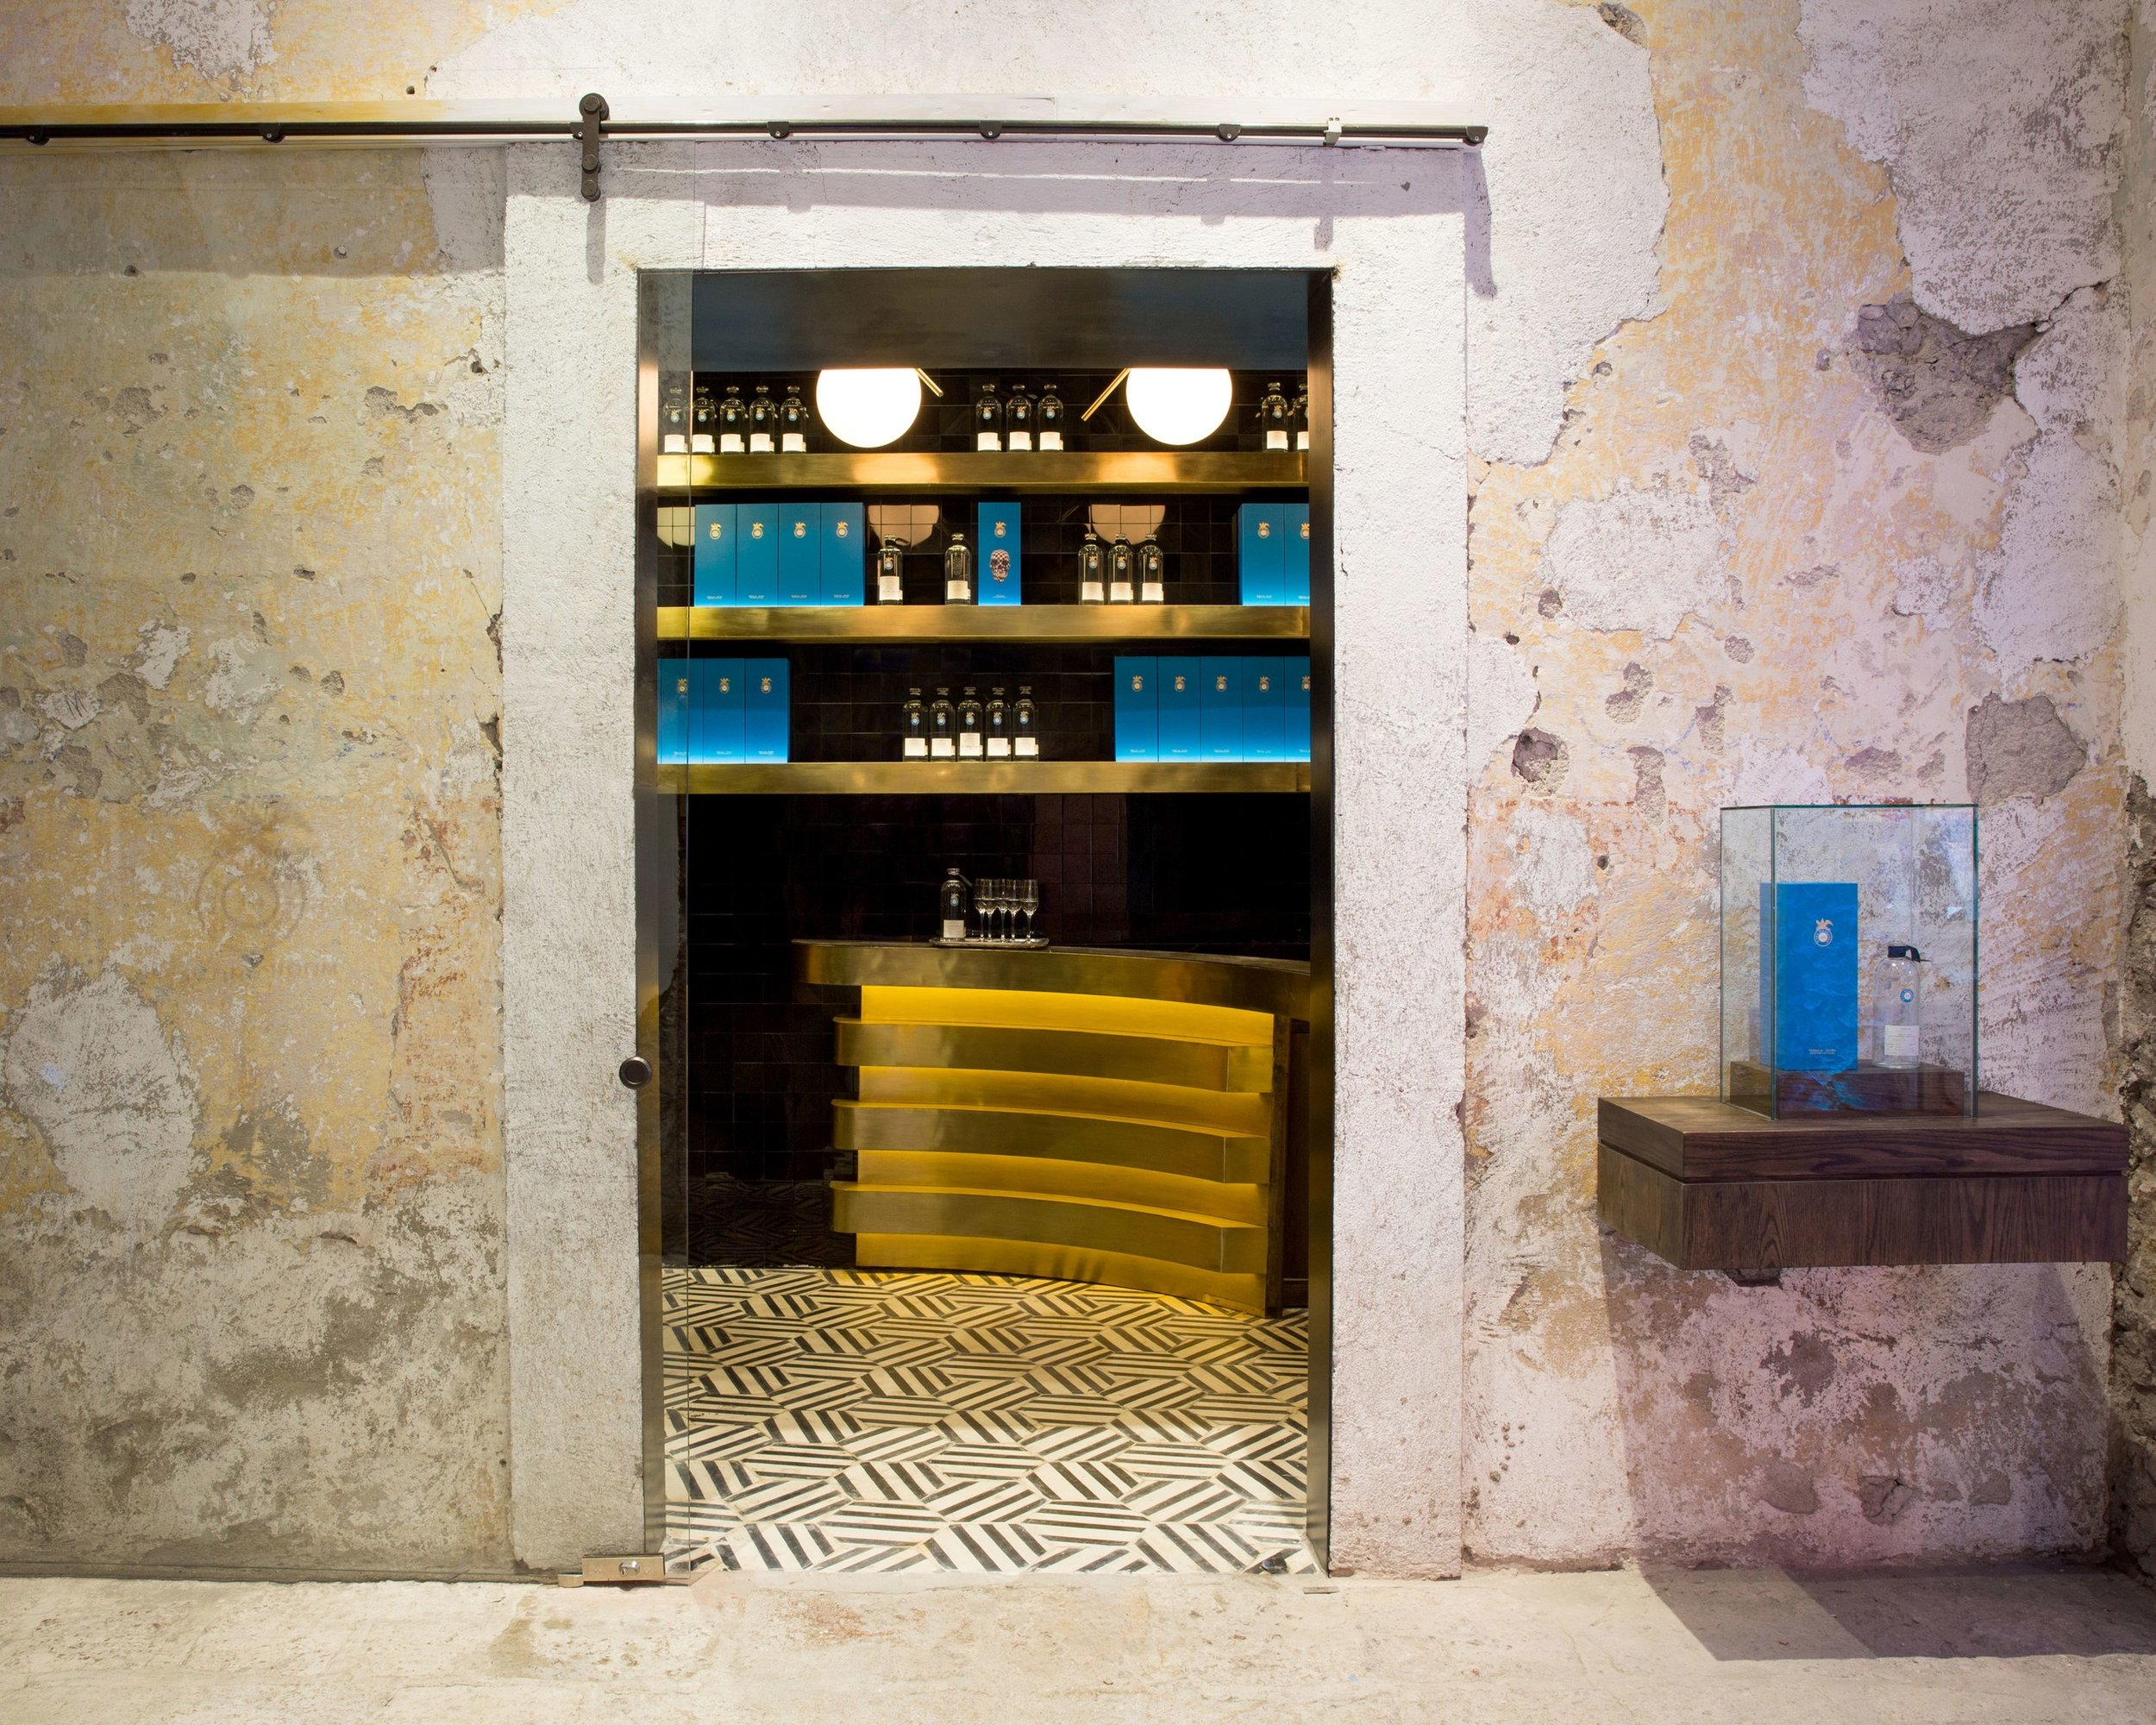 Feel like a giant at one of the smallest, teeny tiny bars on Earth (BonAppetit.com)